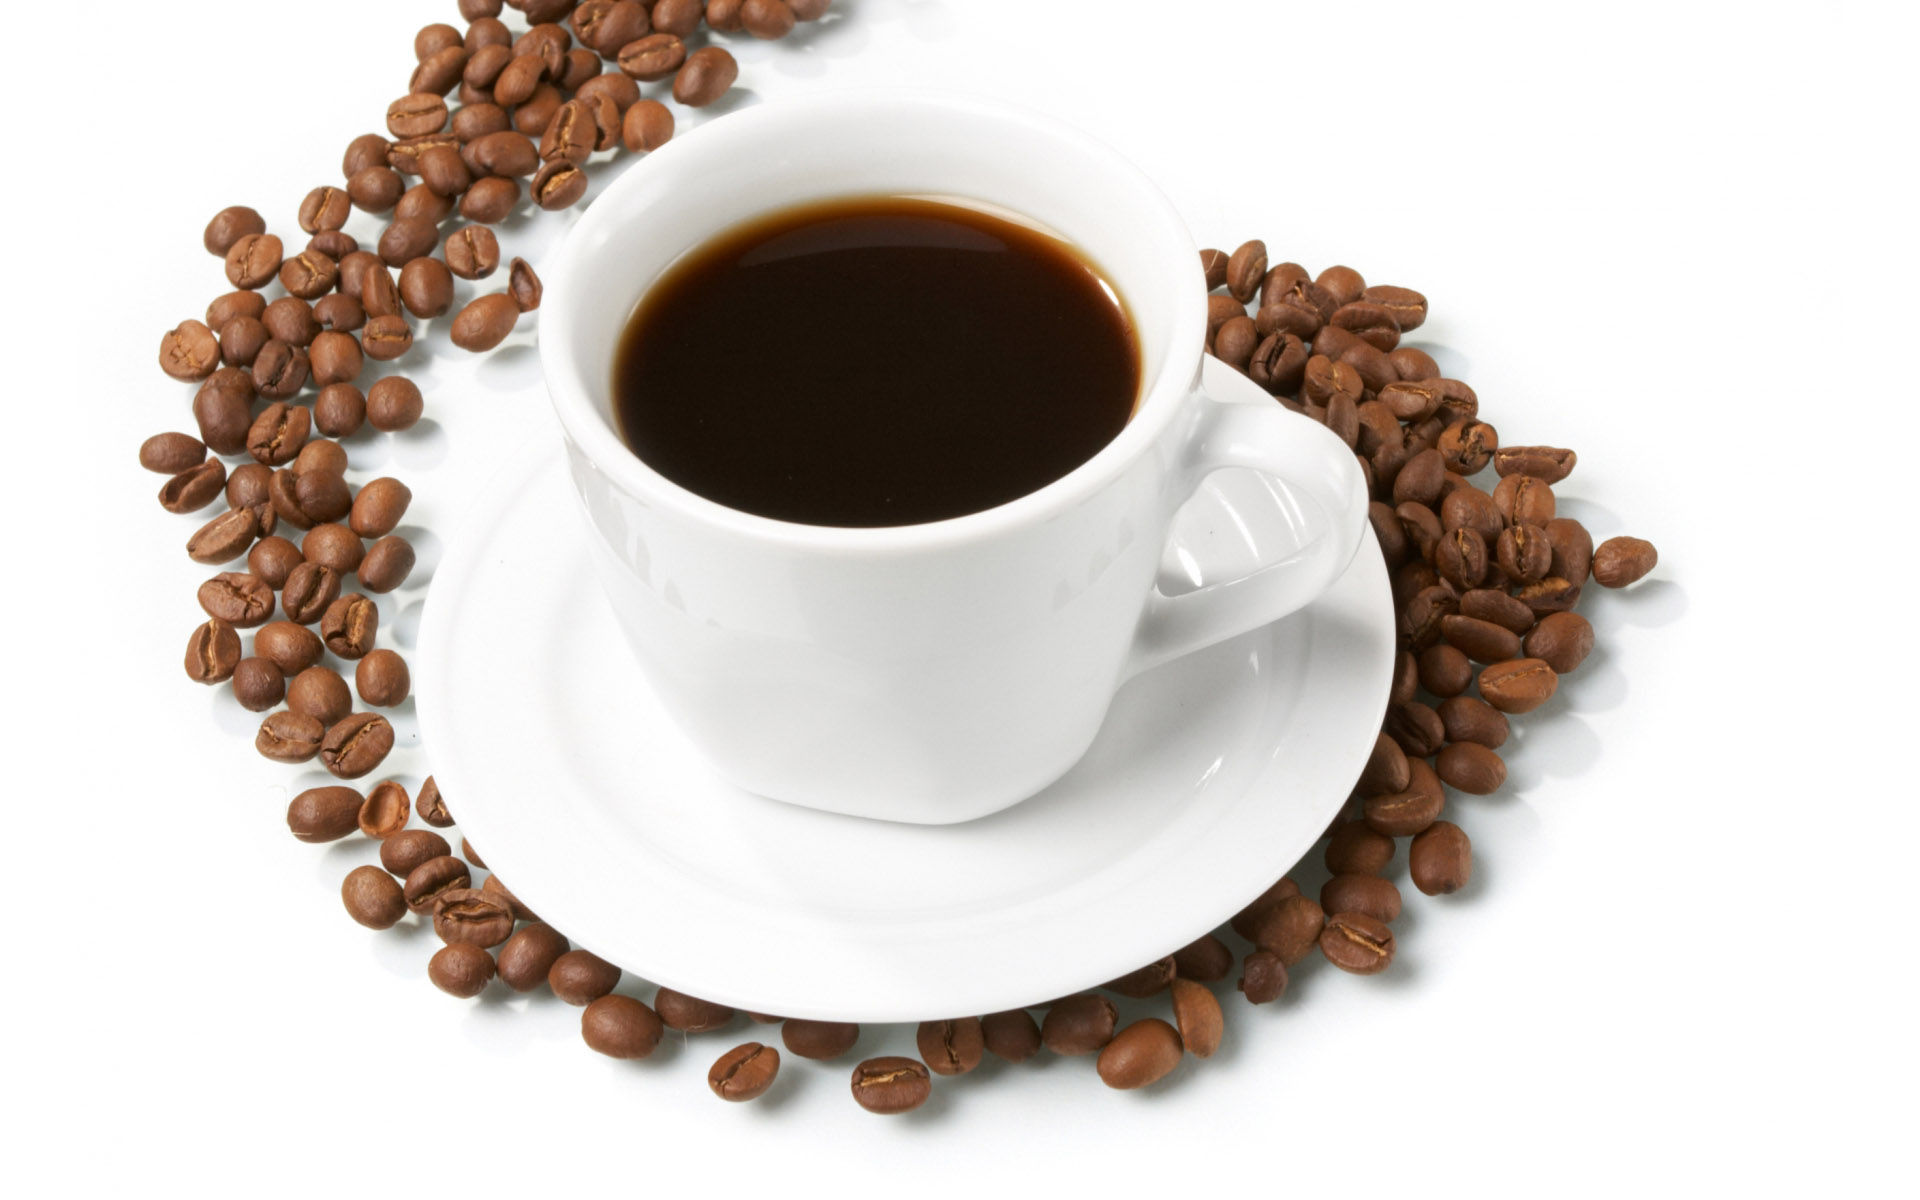 Coffee and coffee beans close-up 16317